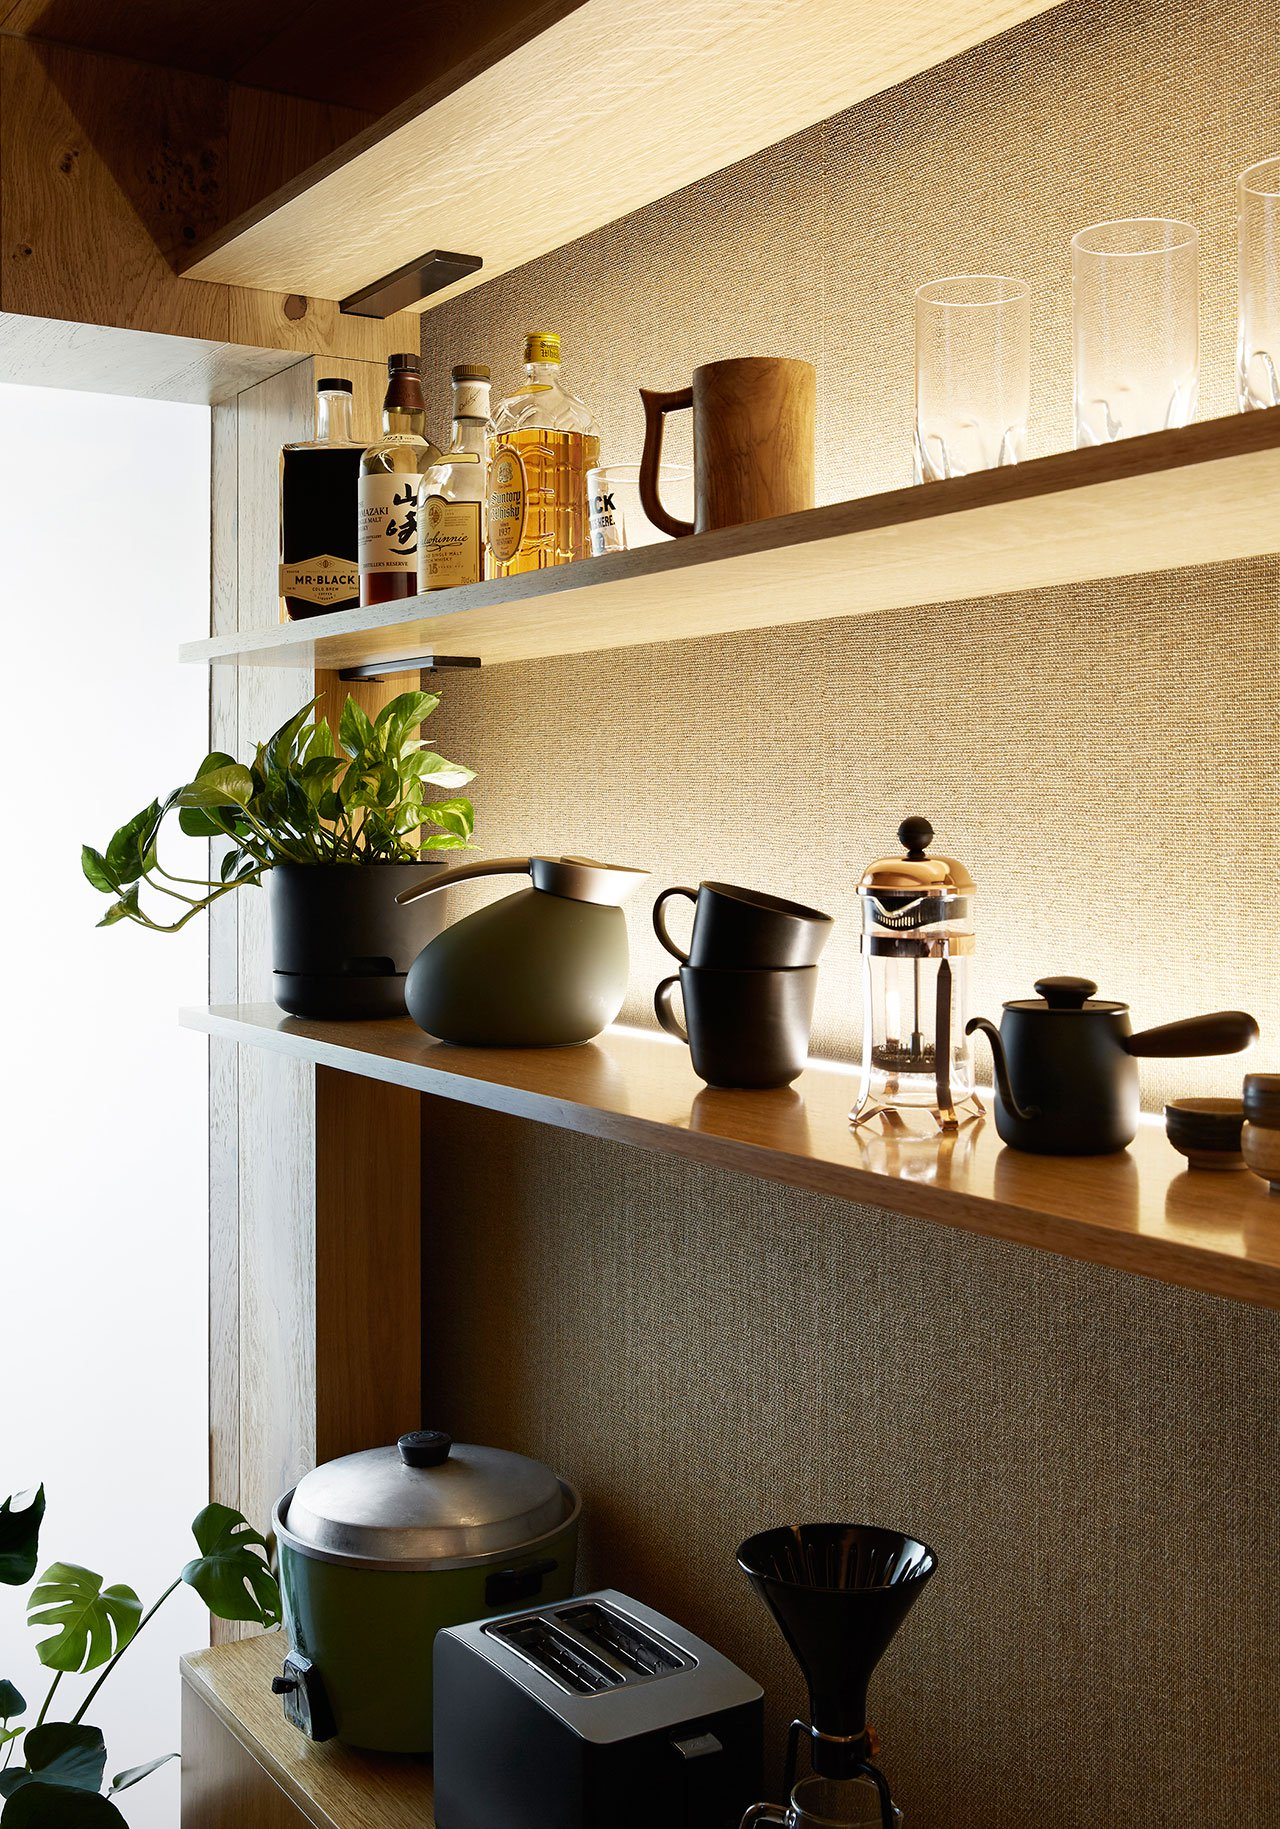 The kitchen shows off a comfortable open shelving unit with all the necesary things